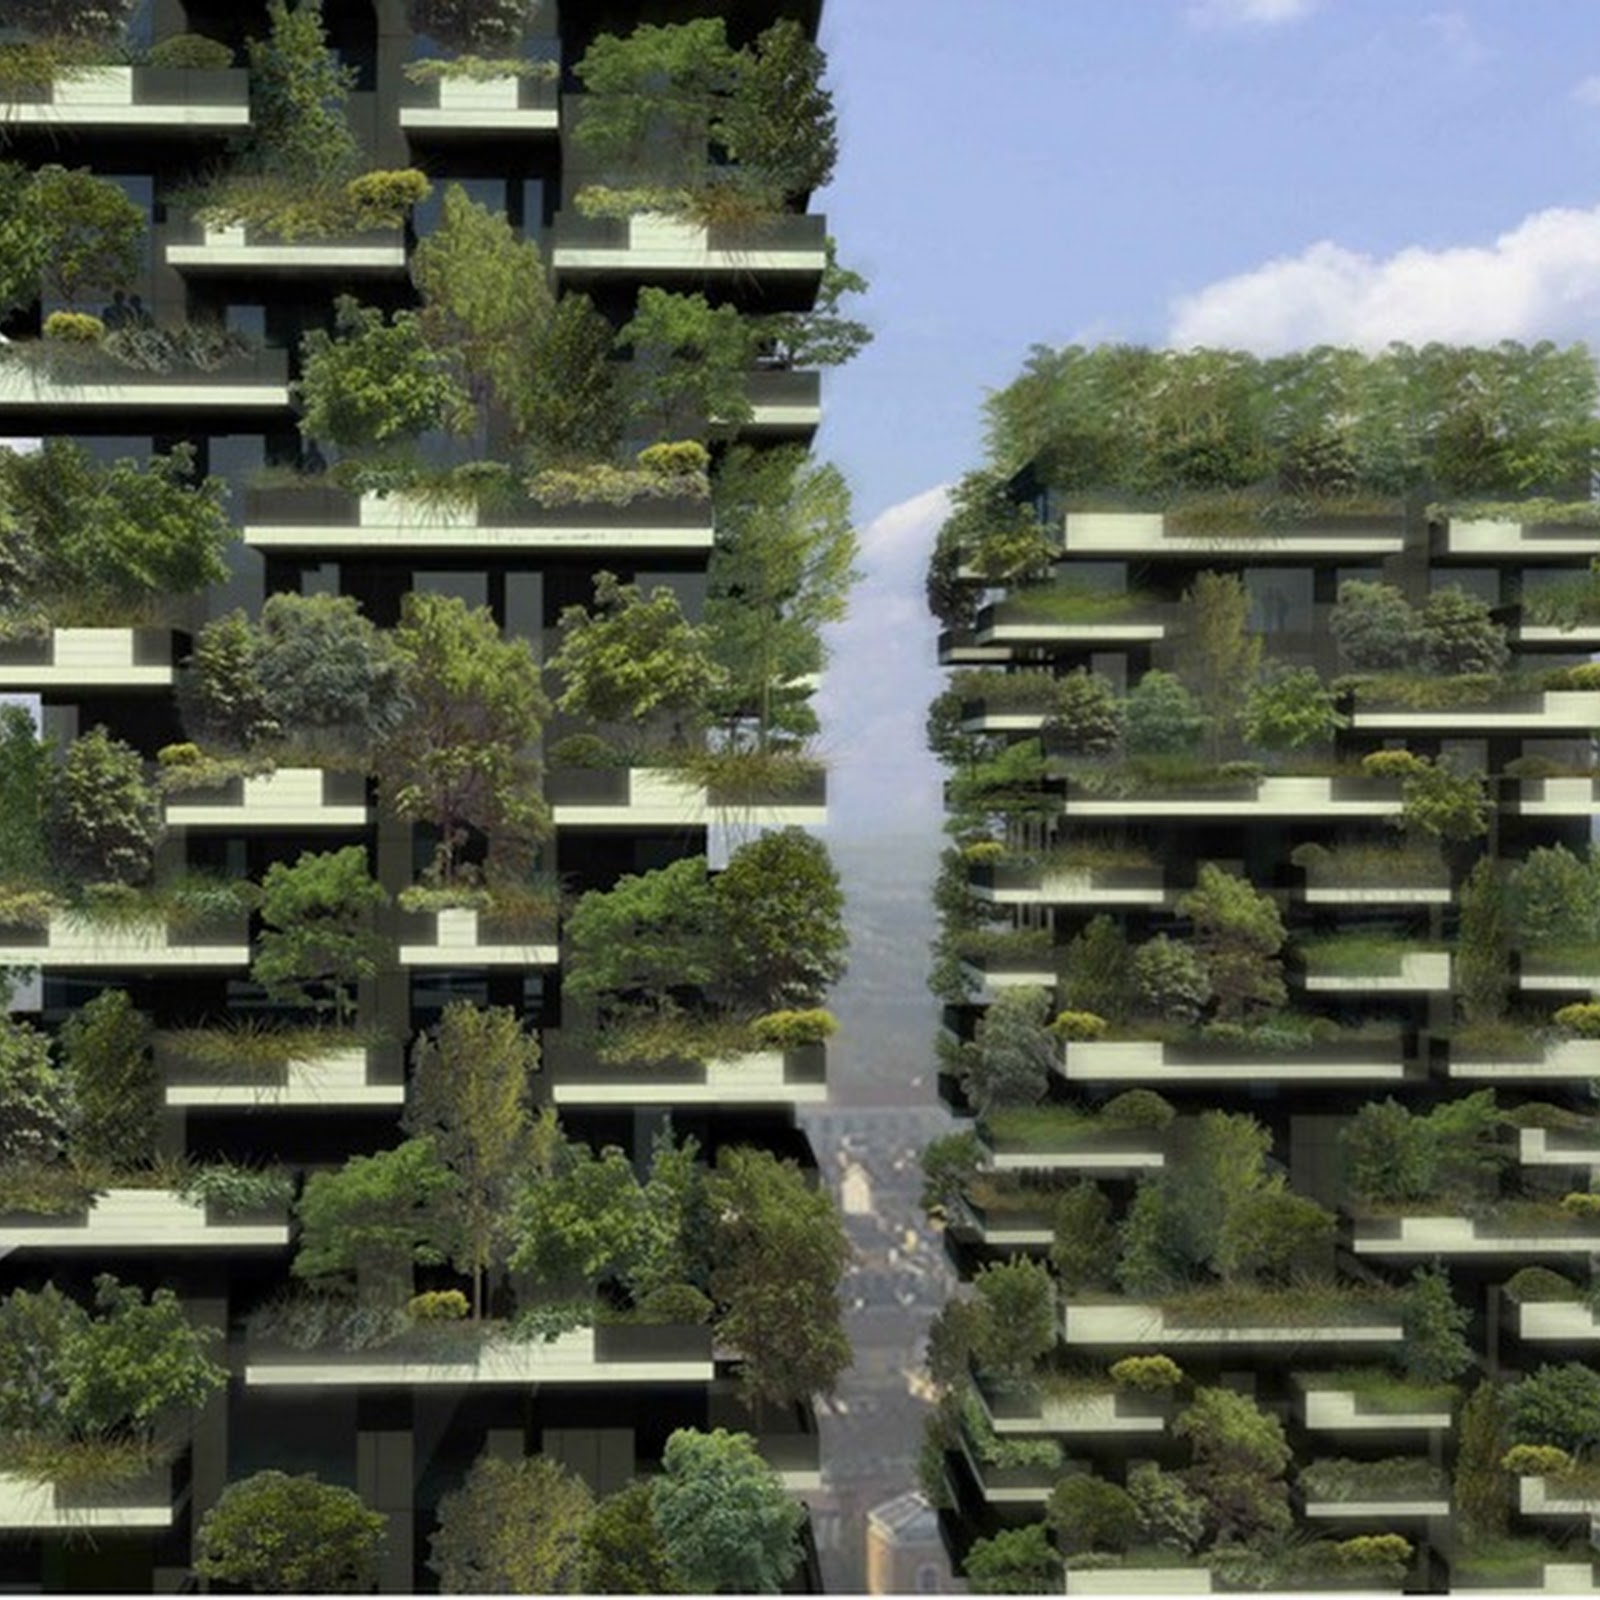 Bosco Verticale: World's First Vertical Forest in Milan